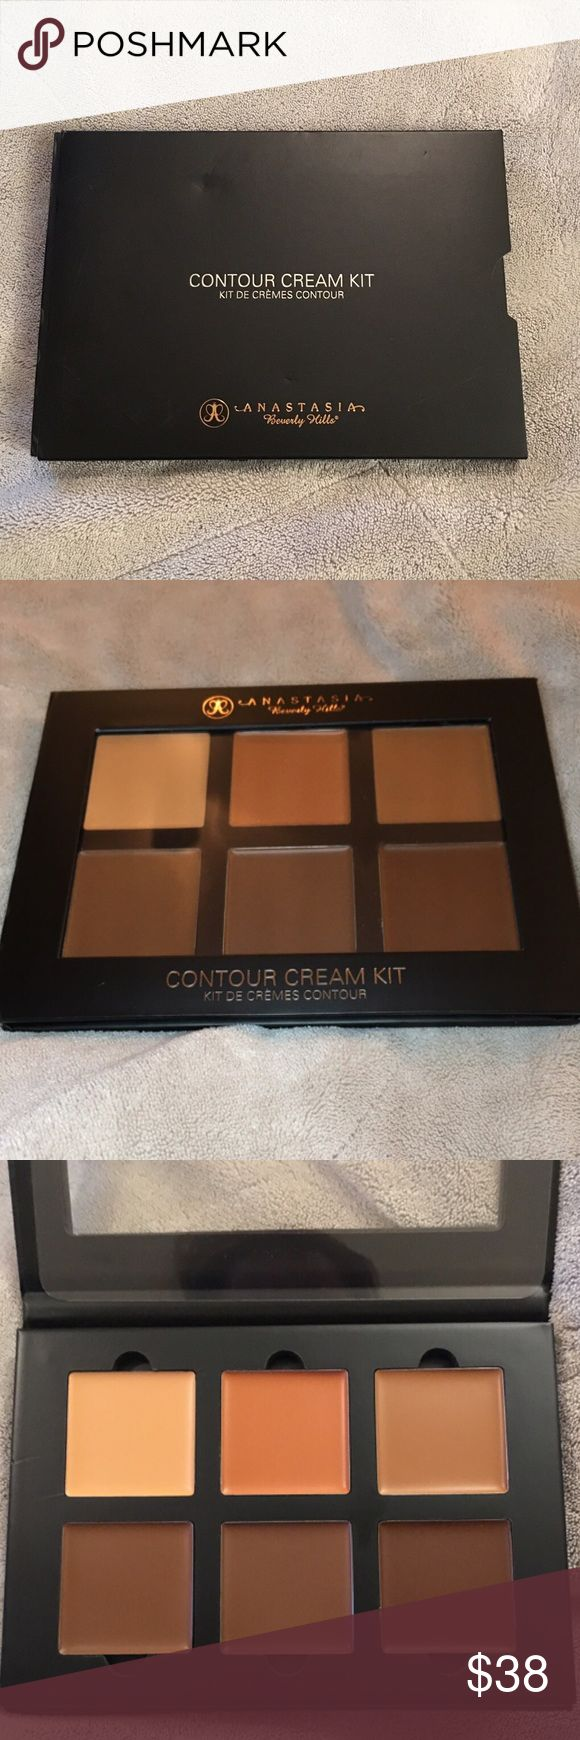 Anastasia Beverly Hills Deep Contour Cream Kit 100% Authentic Anastasia Beverly Hills Deep Contour Cream Kit  - Deep color - Brand new Anastasia Contour Kit : Deep  - Contouring and highlighting creams to dramatically sculpt and enhance your features. Creams have a rich, blendable texture ideal for heavy highlight and contour. Available in 3 palettes for all skin. Some shades act as ideal correctors for skin discoloration.  Shades Nude, Coral, Cinnamon, Chocolate, Espresso, Carob  New! Never…